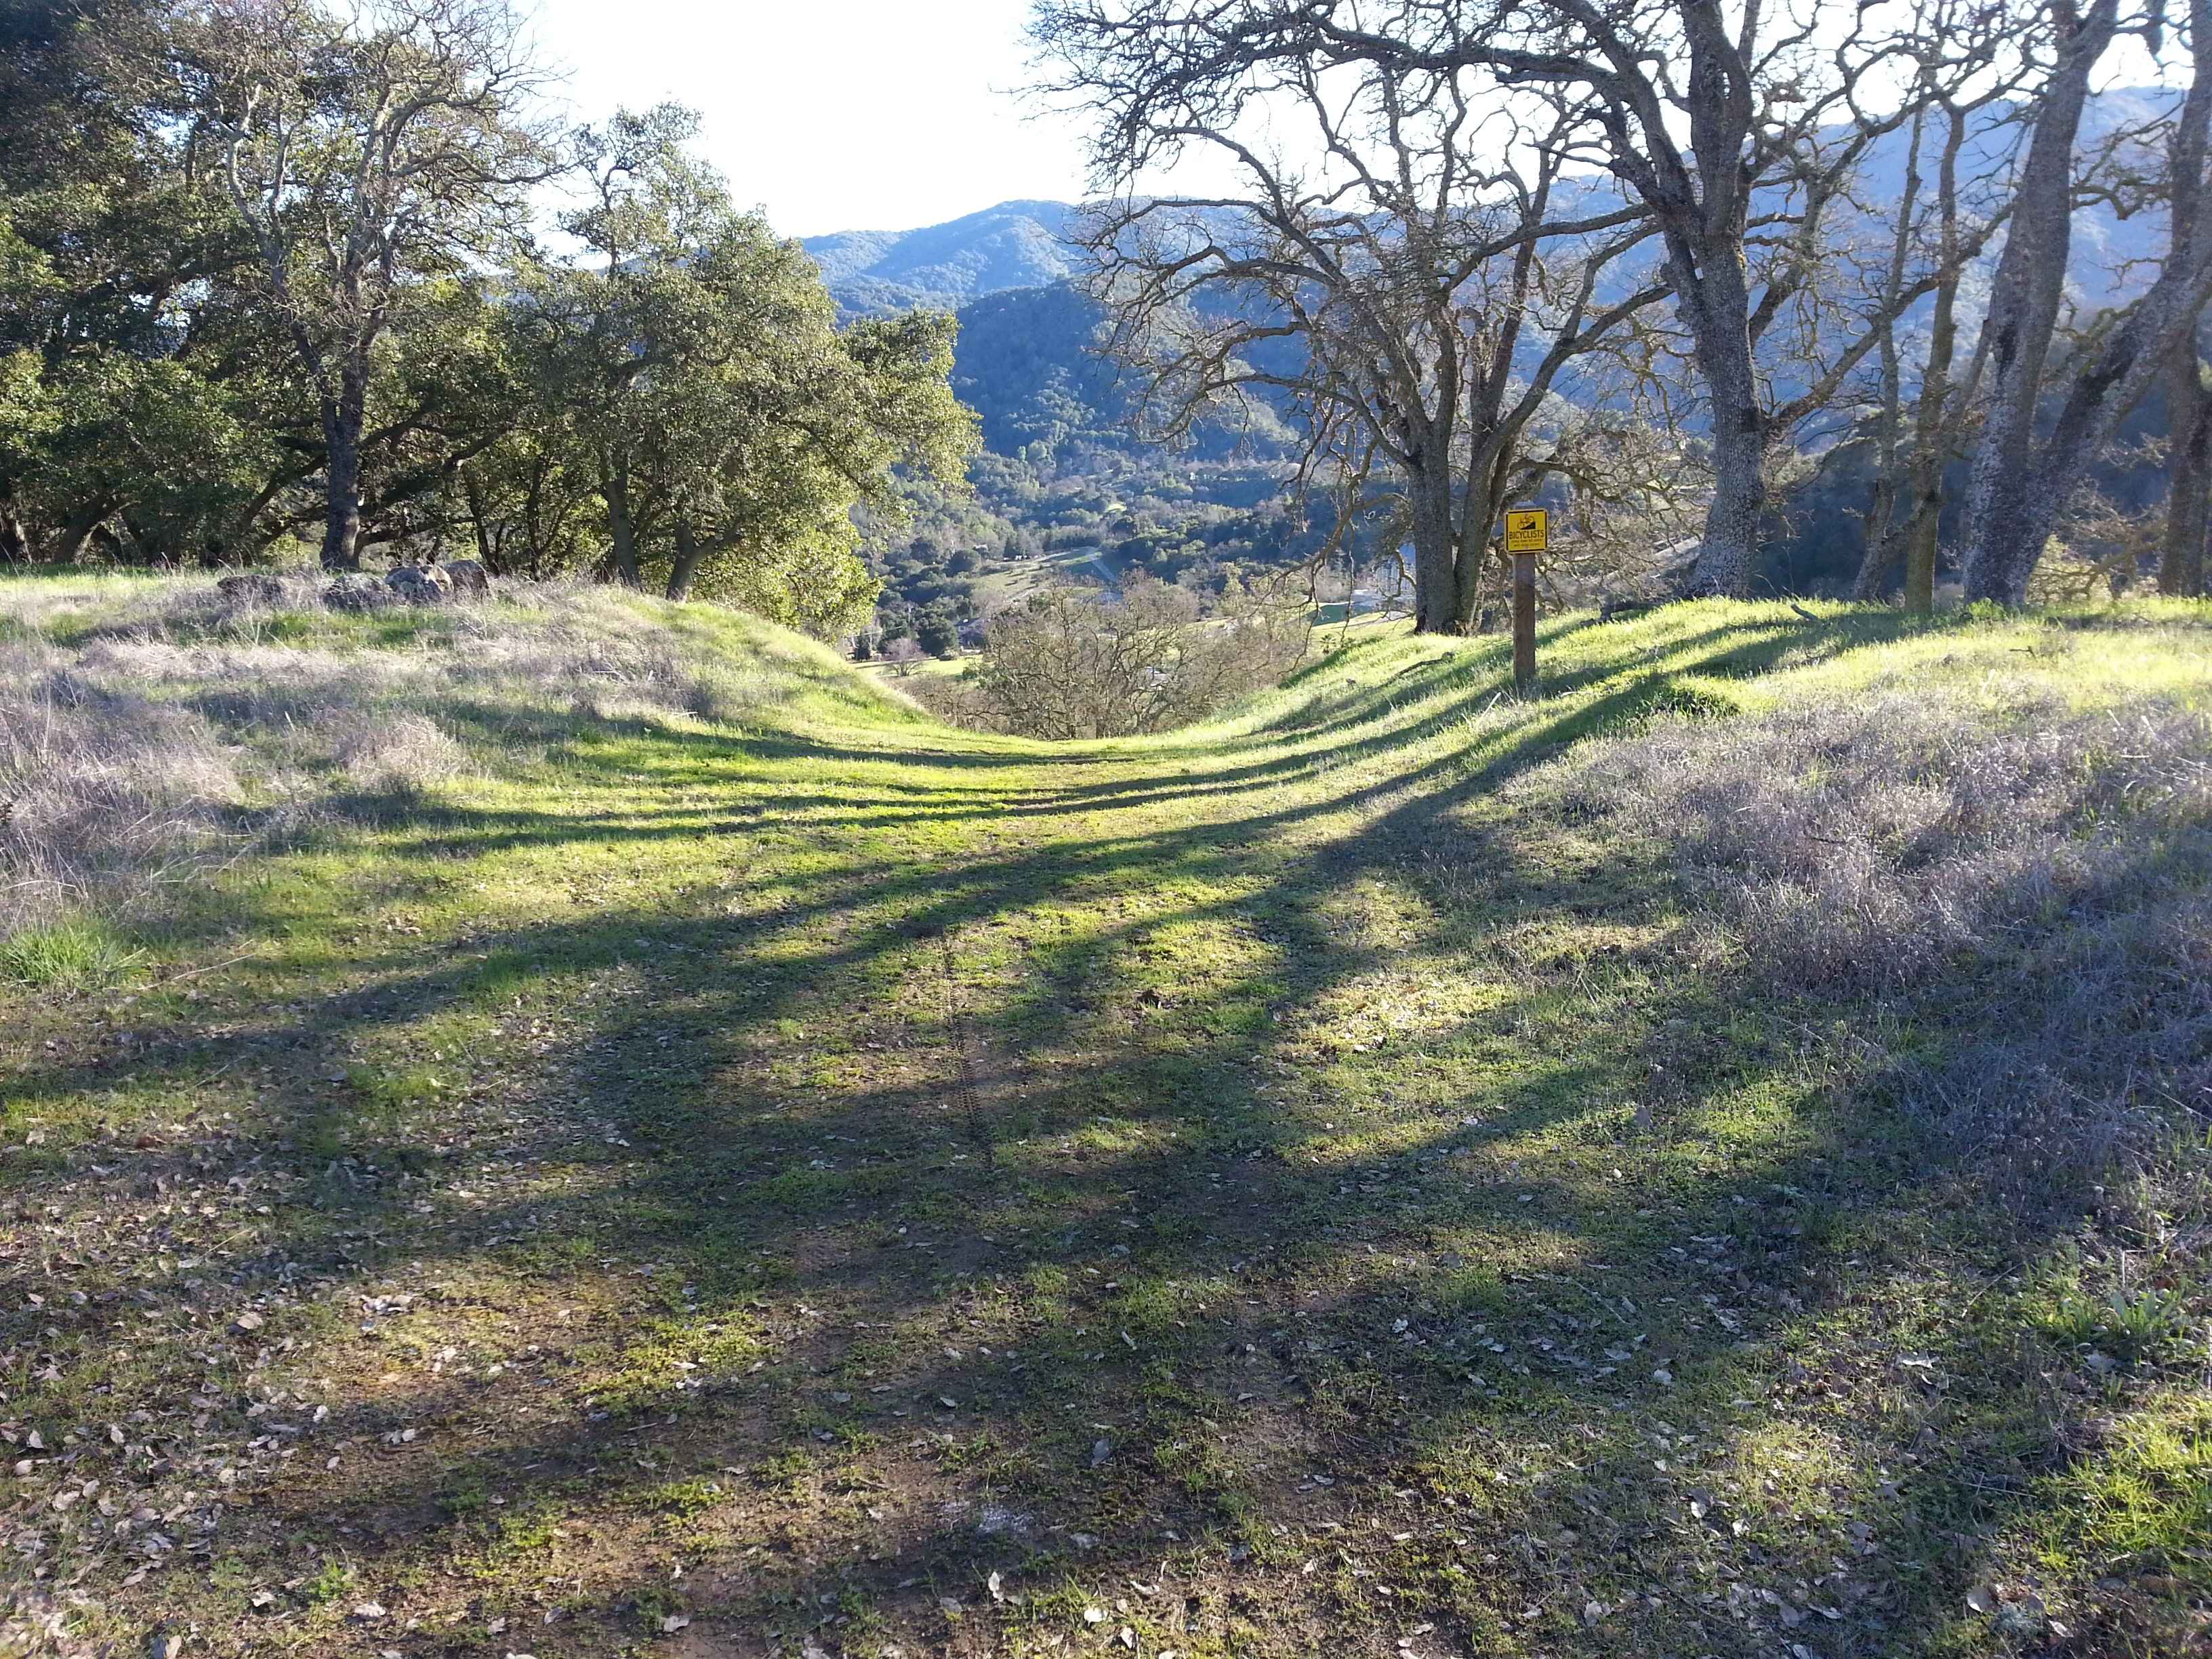 Shannon Valley Ranch open space trail - Shannon Valley Ranch